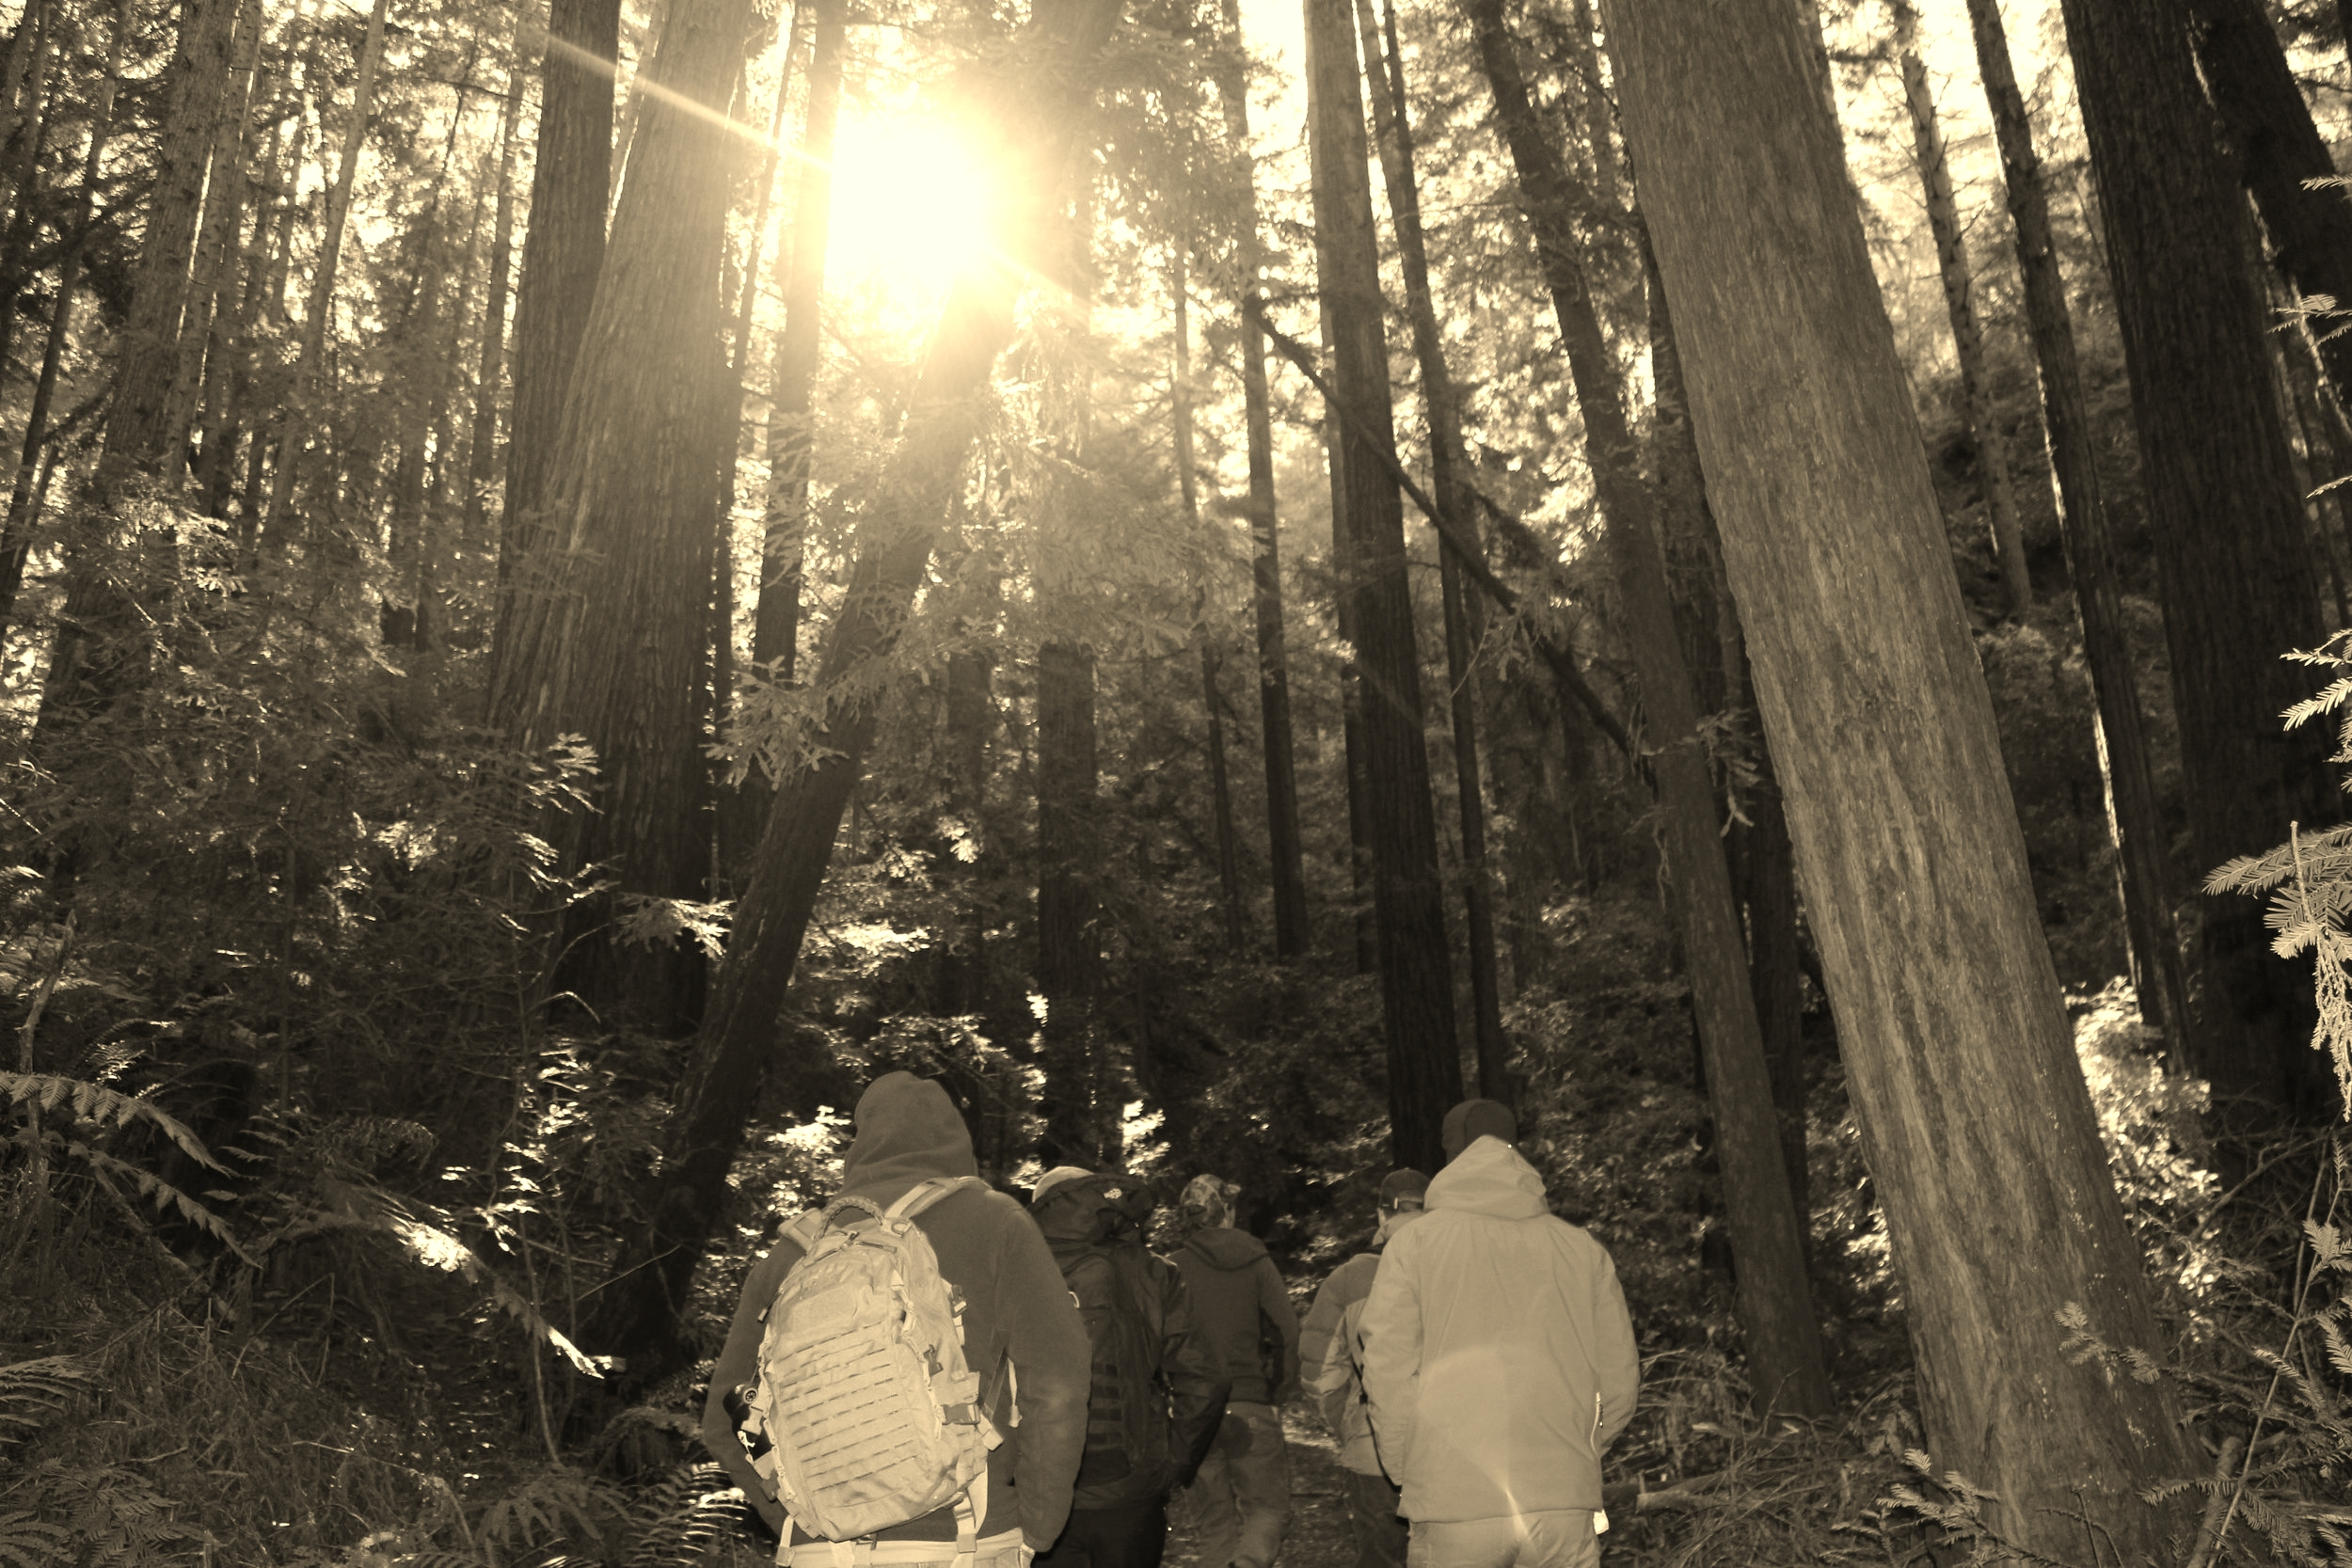 bill eric joe pat Land excursion STG 001 survival training outdoors redwoods IMG_3585.JPG